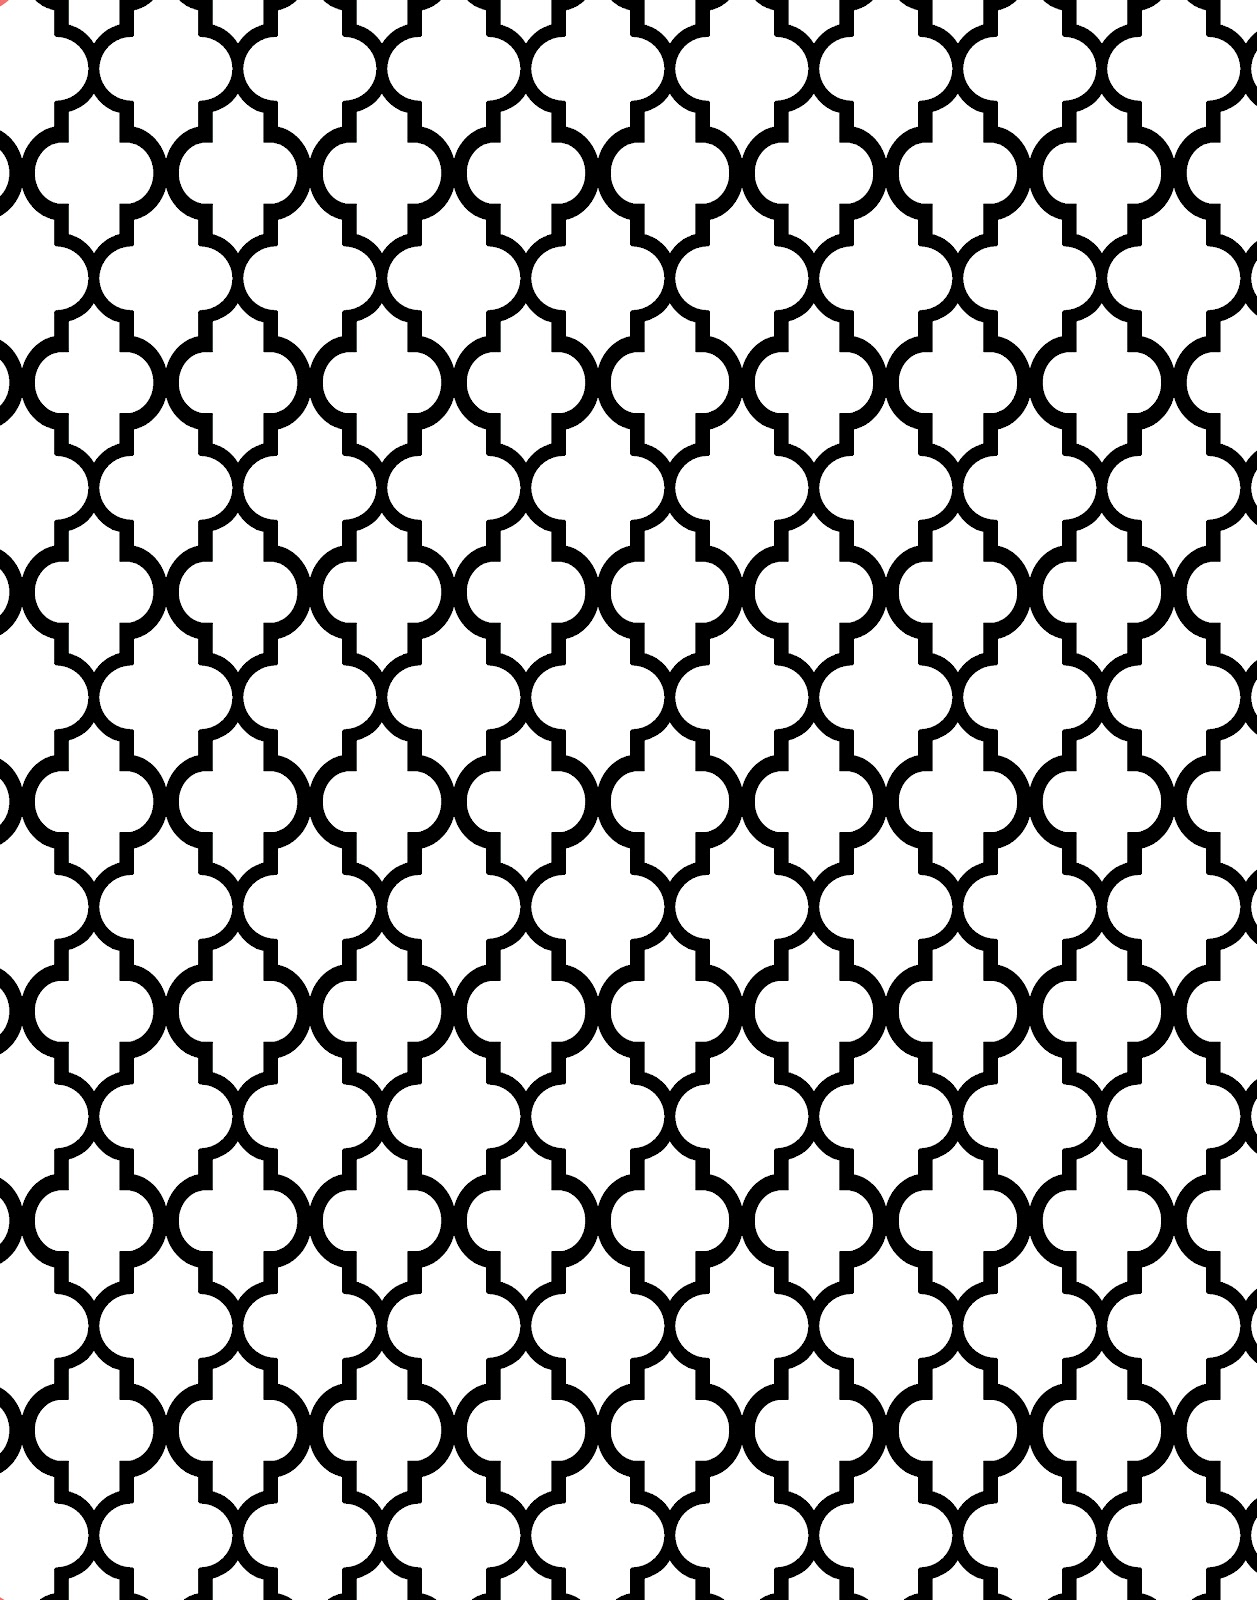 Moroccan patterns clipart svg download Moroccan pattern clipart - ClipartFox svg download